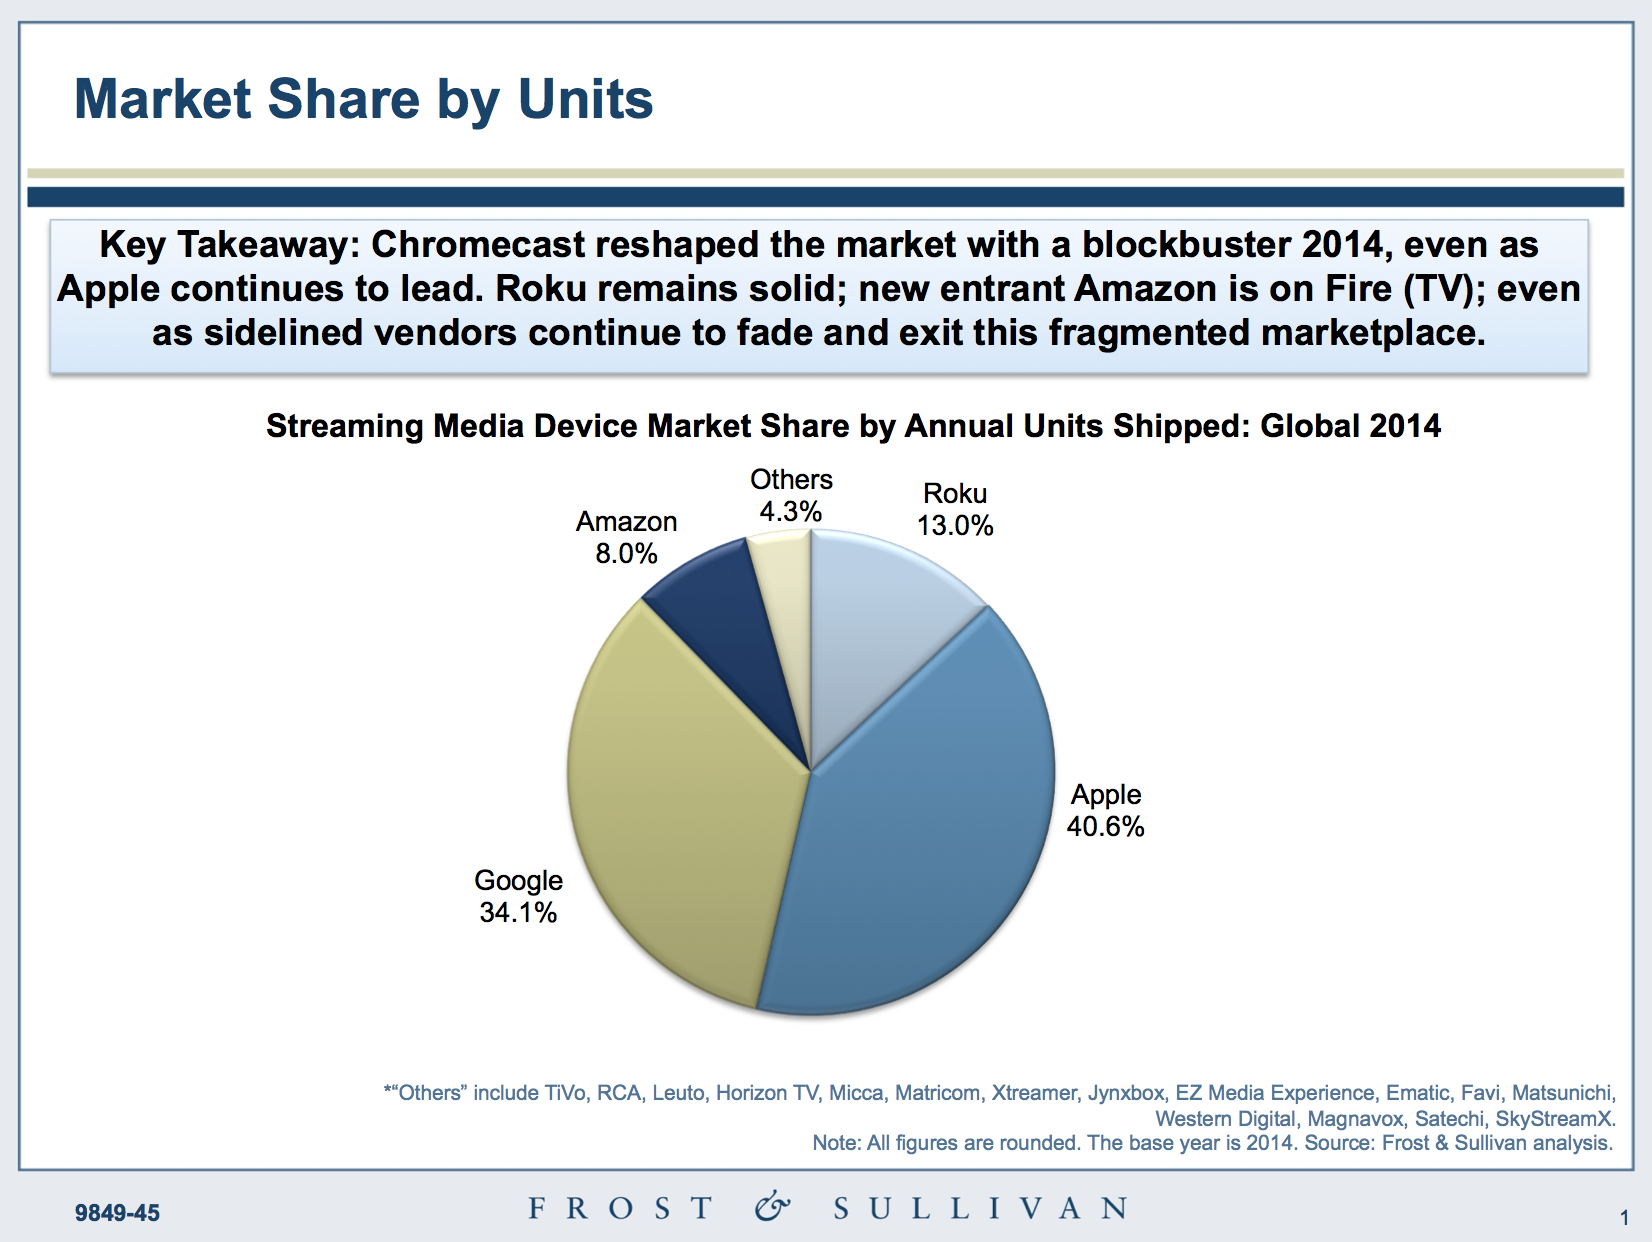 Sales Of Apple TV Led The Streaming Device Market In 2014 With 40 6